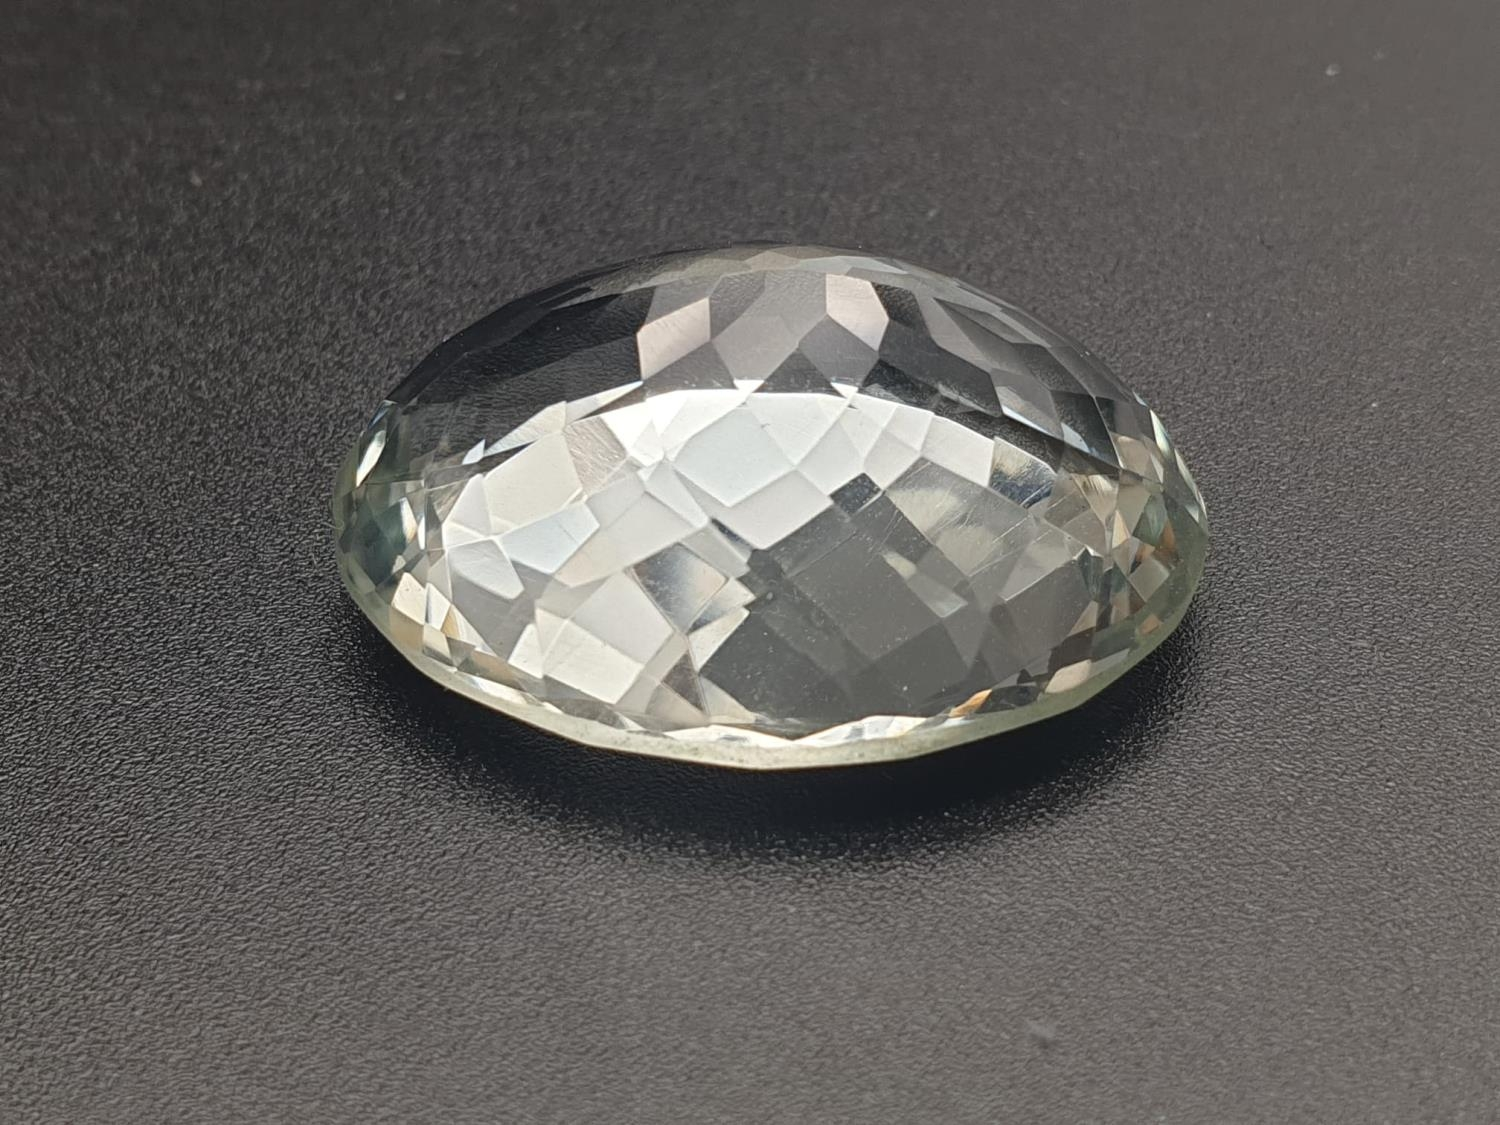 45.39 Cts Praseolite Gemstone. Oval shape. ITLGR certified - Image 2 of 4